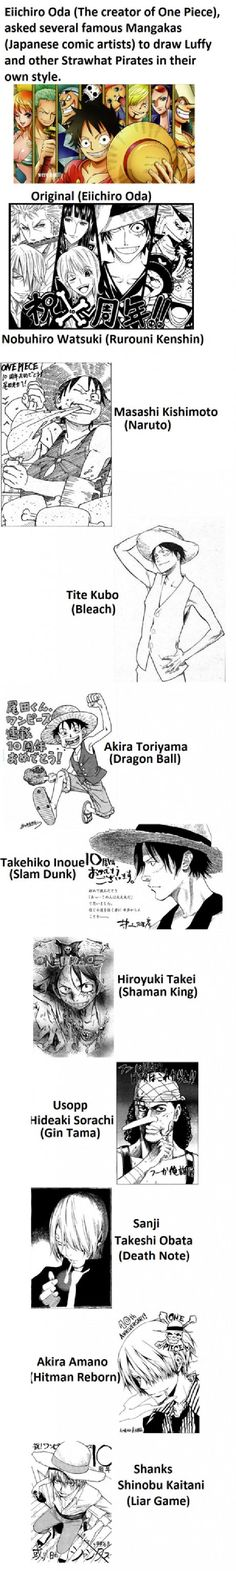 One Piece - Famous Mangaka Renditions (I don't know most of the artists, but this is pretty cool :)